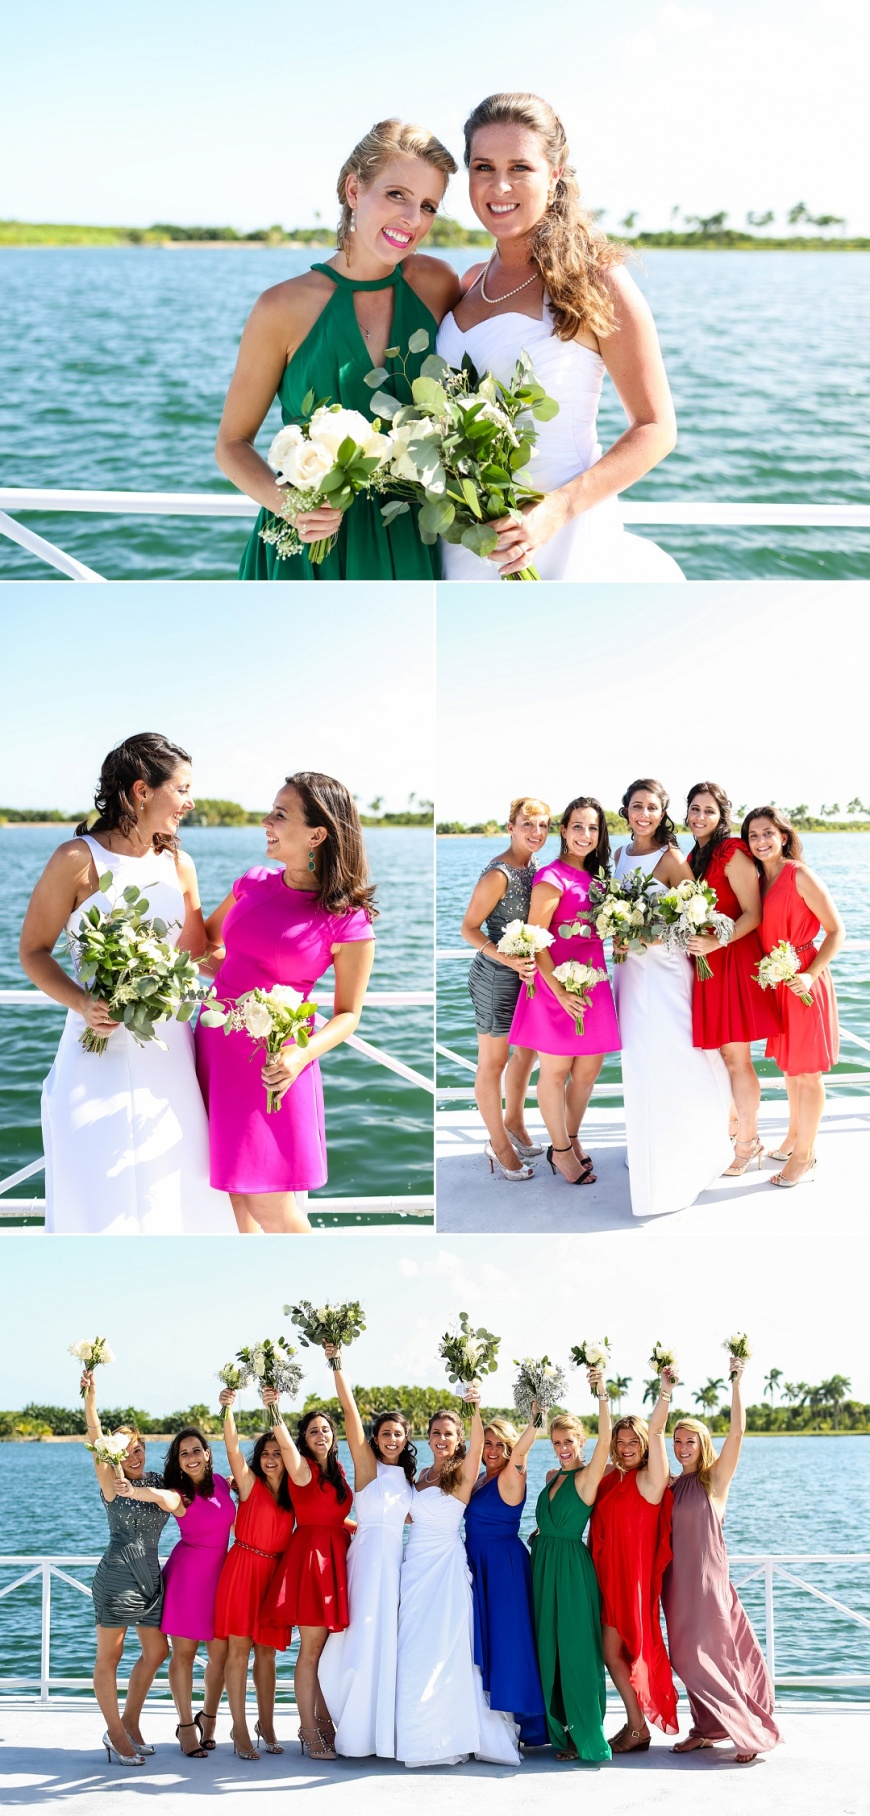 Royal-Palm-Island-Miami-Wedding-Photographer_1041.jpg